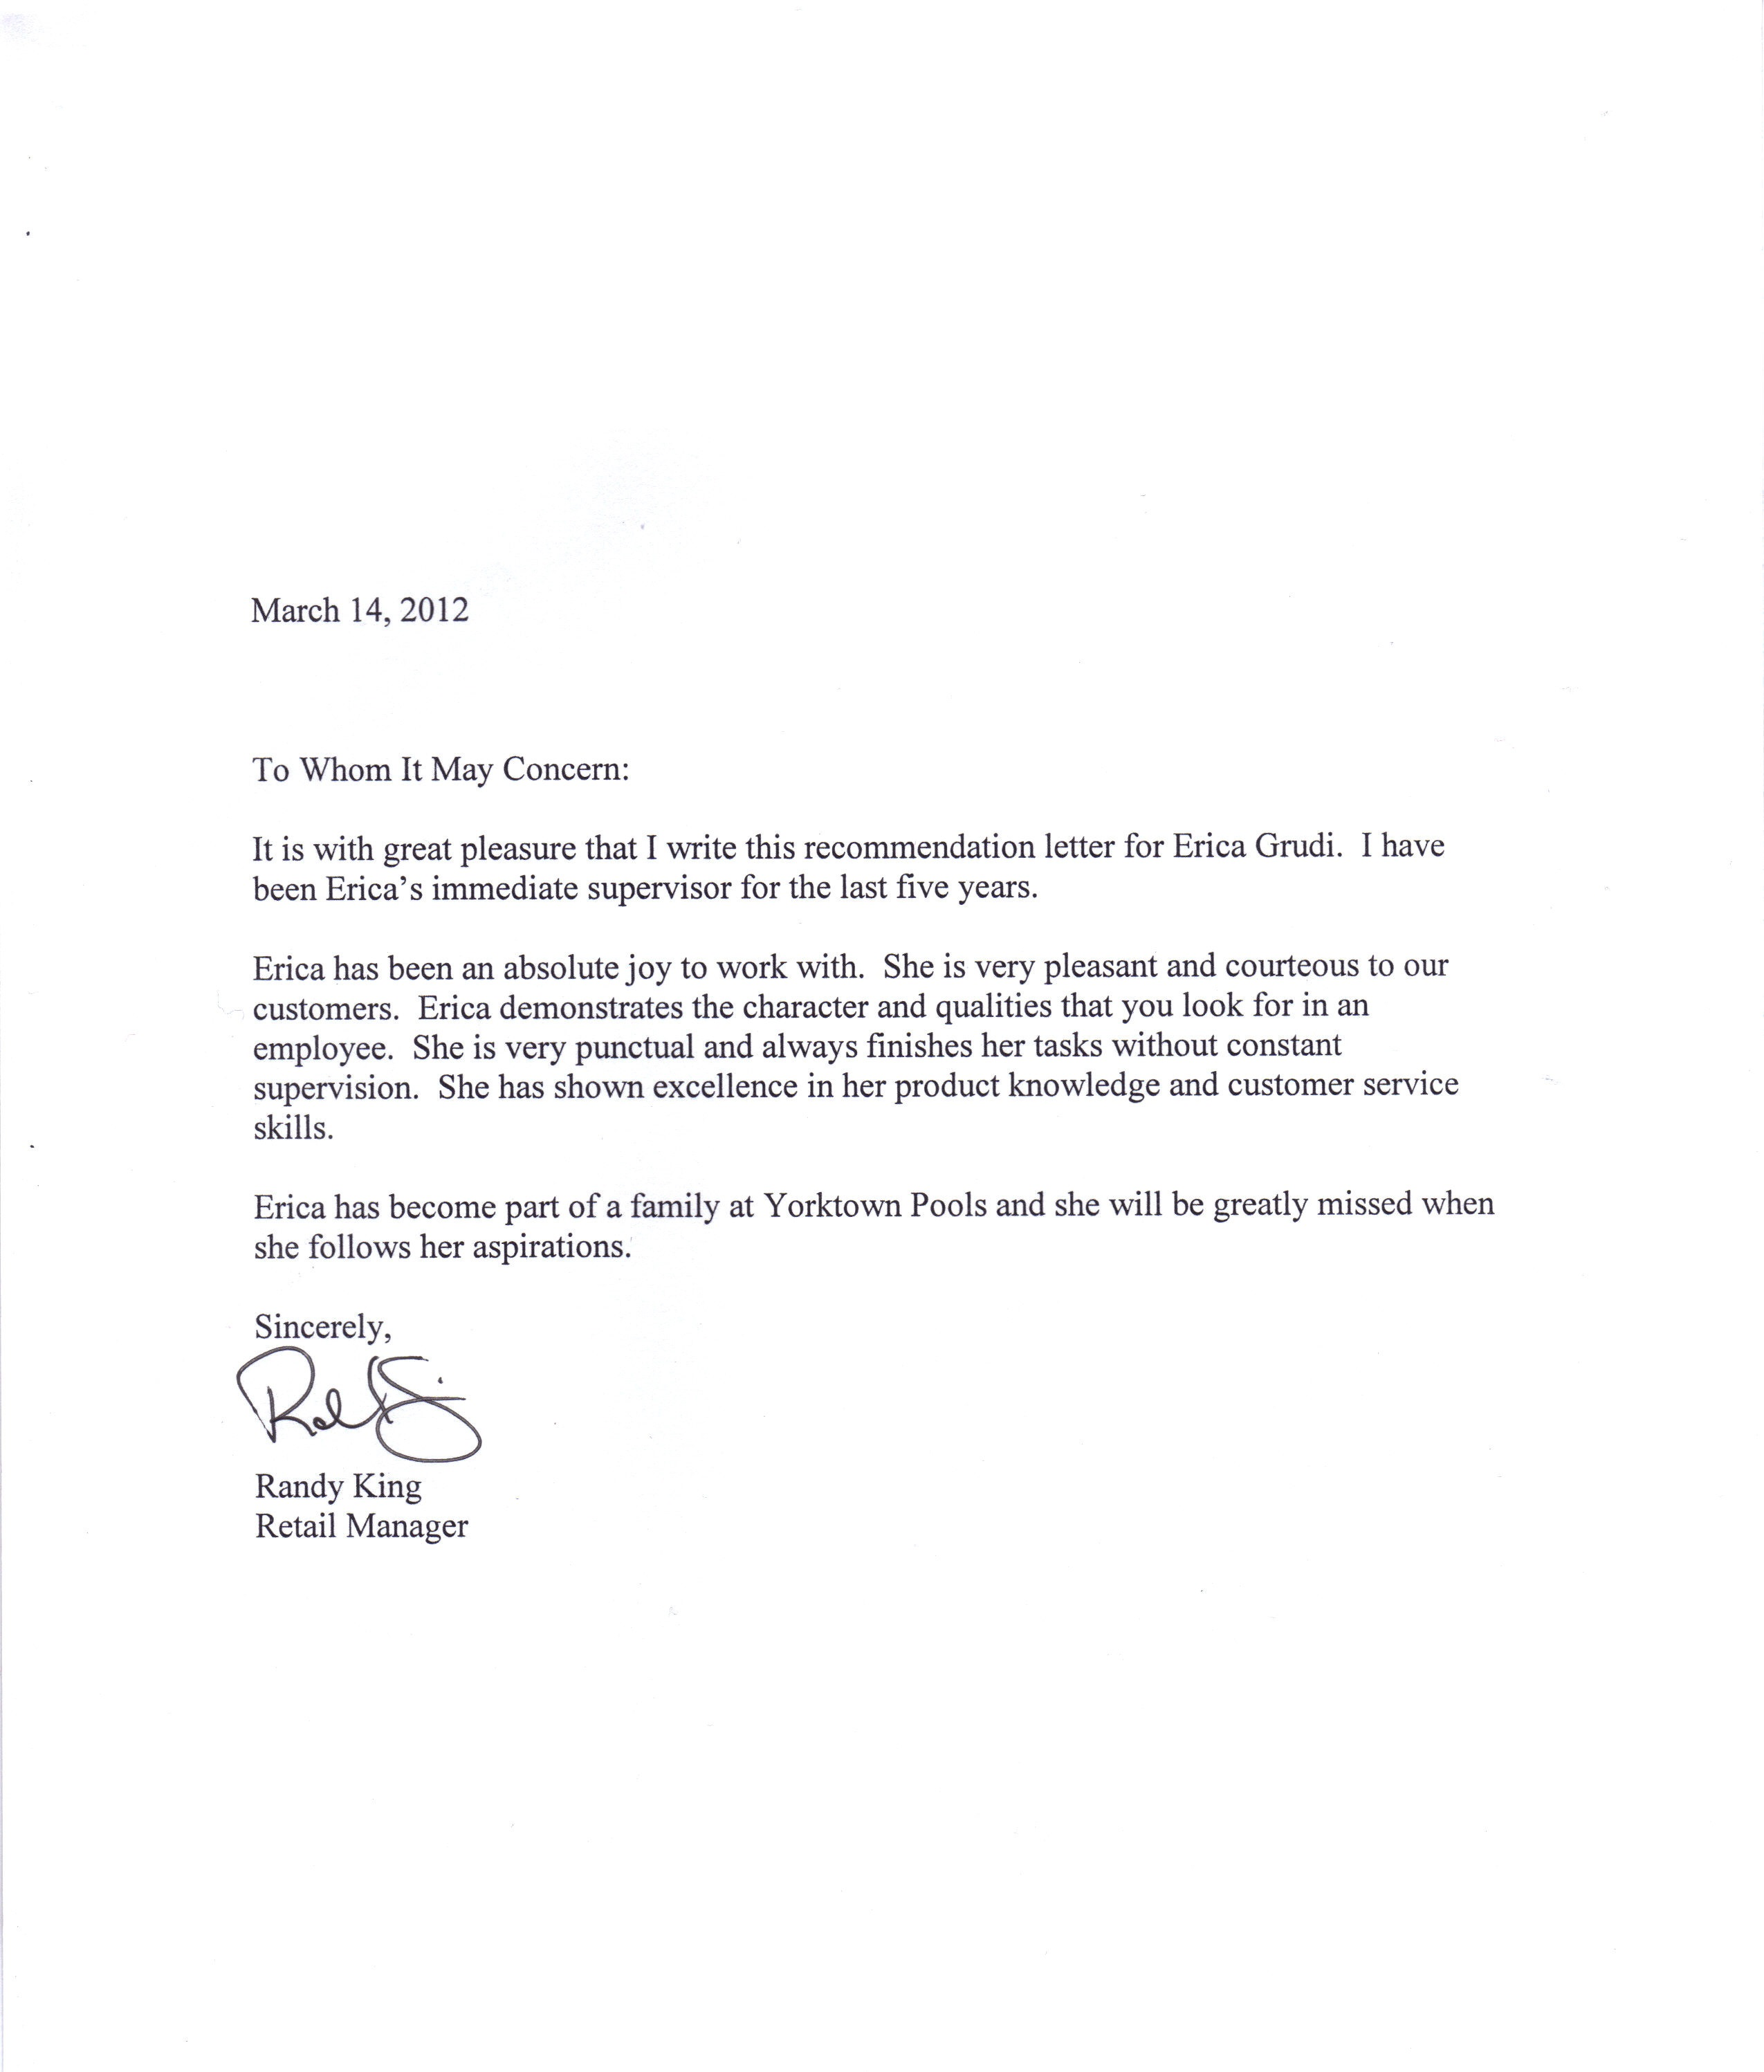 Free Recommendation Letter Download – Free Template for Letter of Recommendation